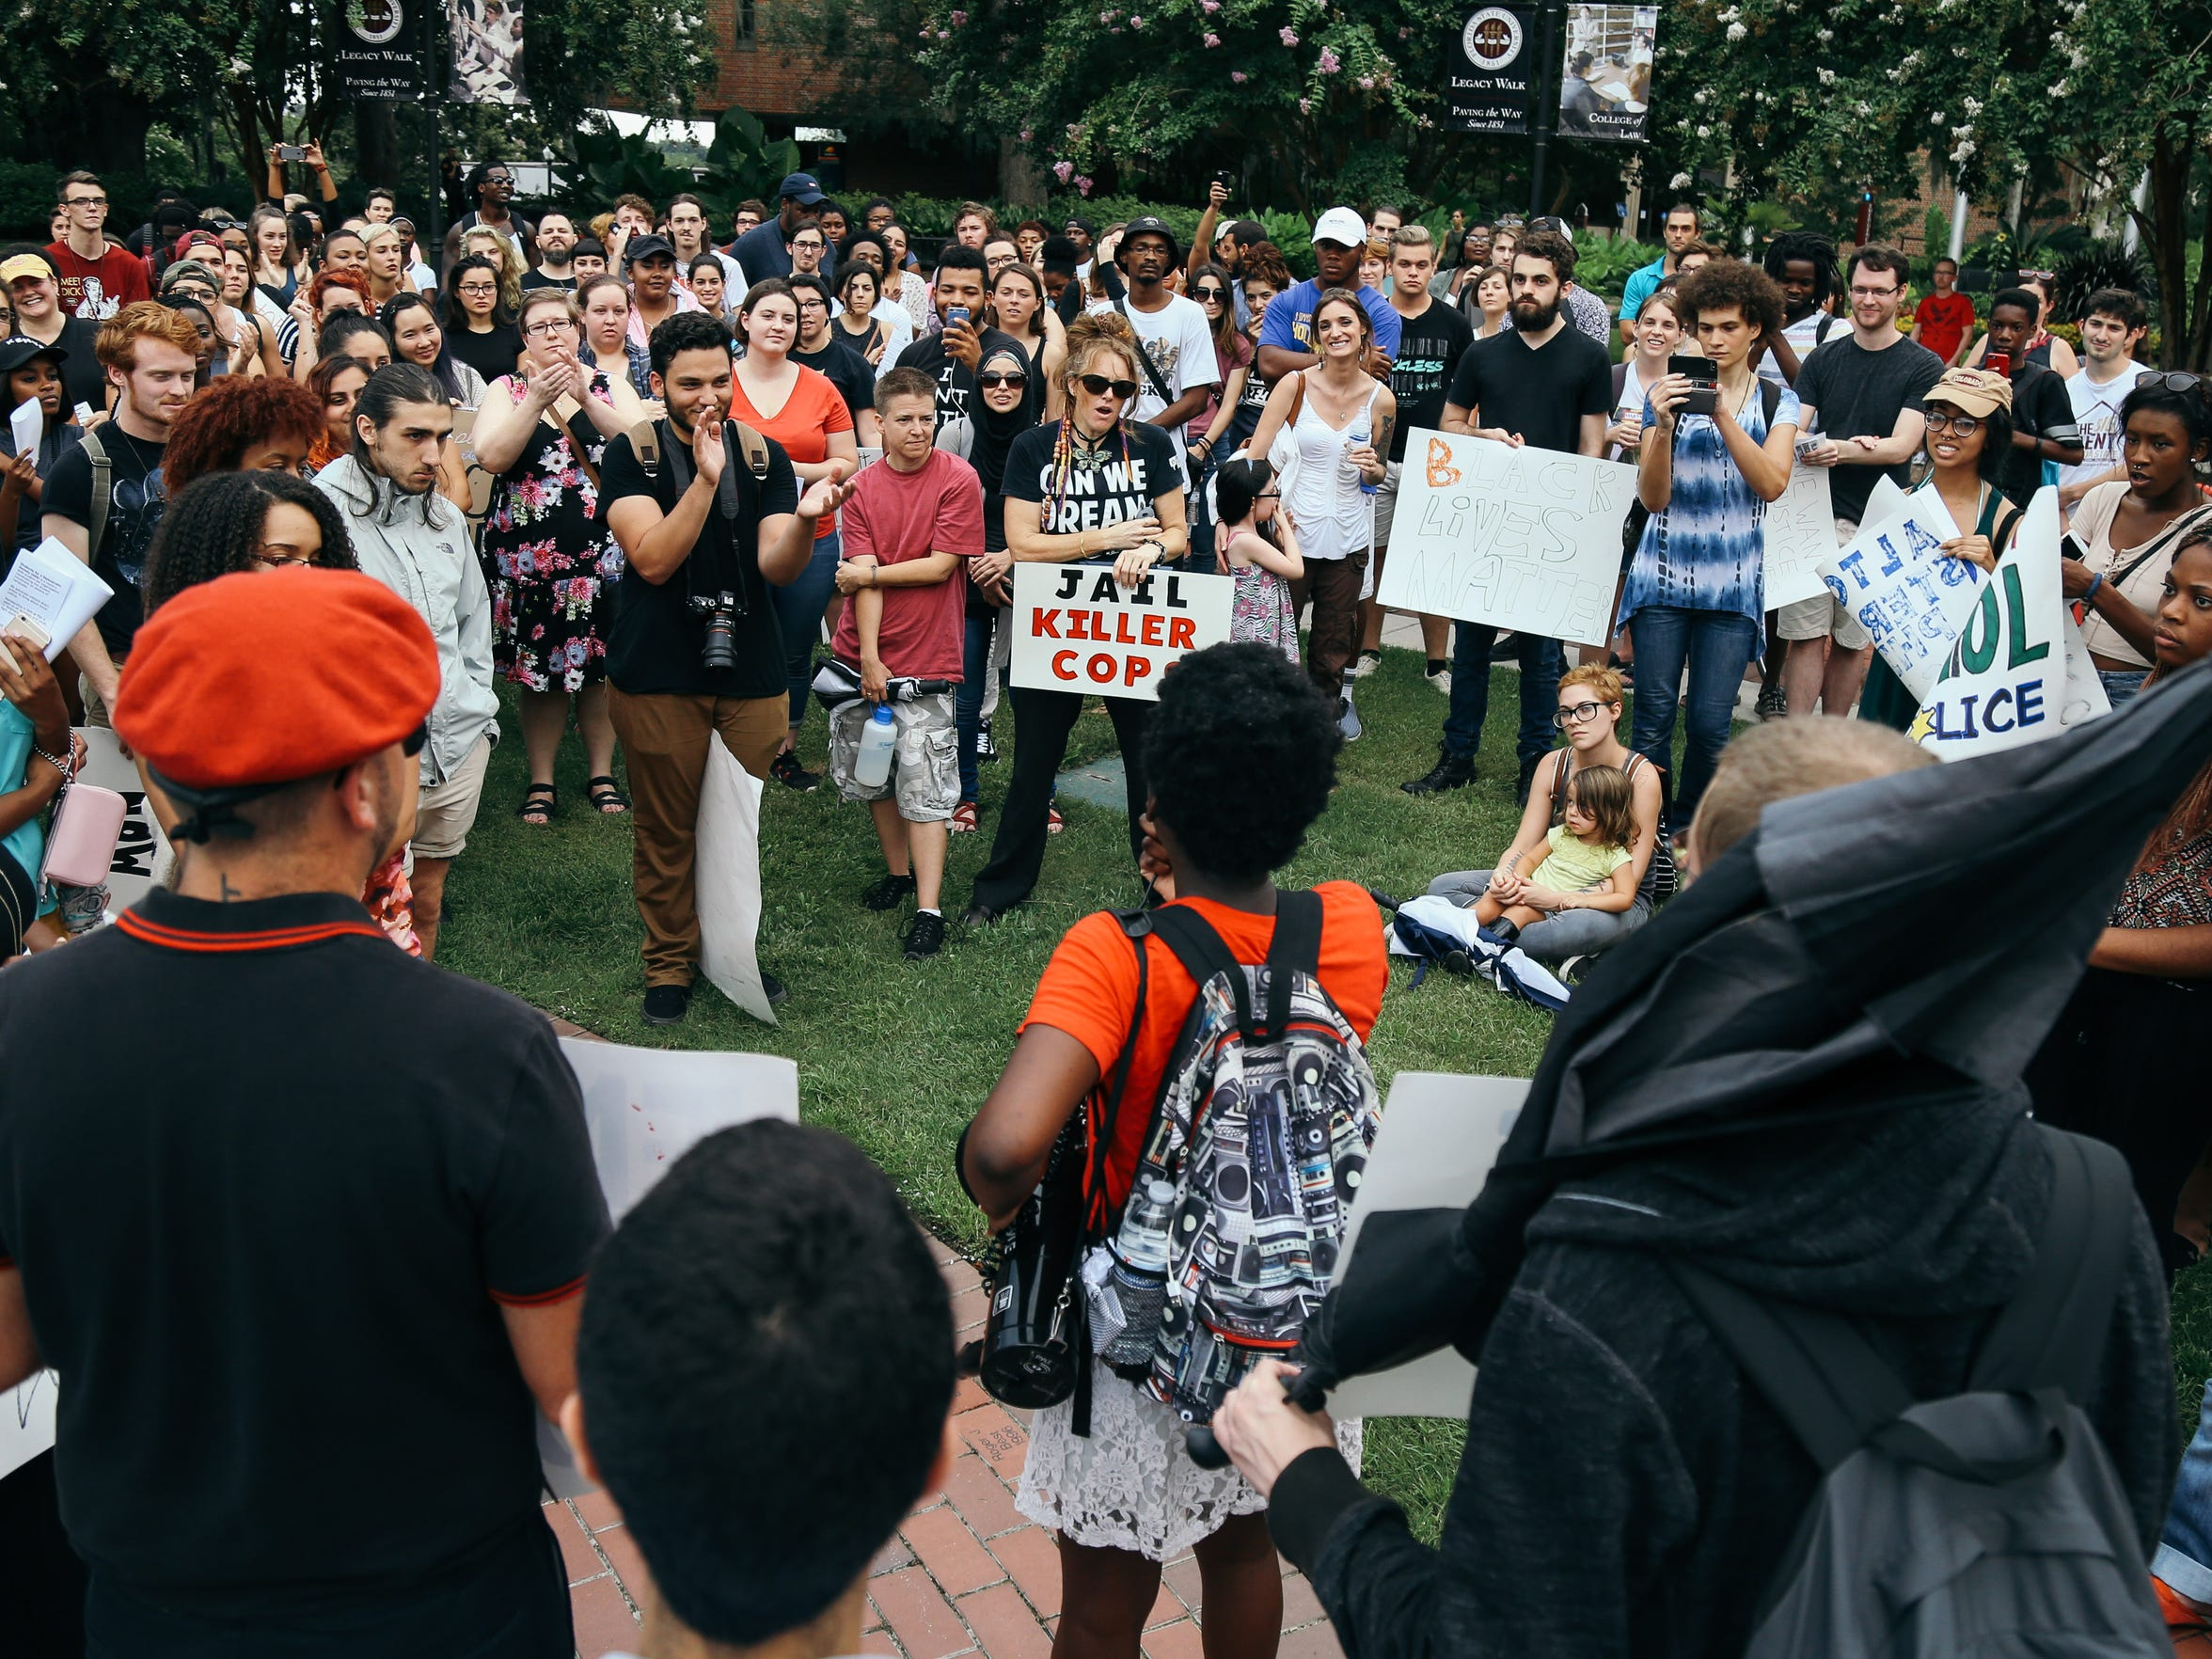 Students protest the shootings of Alton Sterling and Philando Castile on the campus of Florida State University on Tuesday, July 12, 2016.